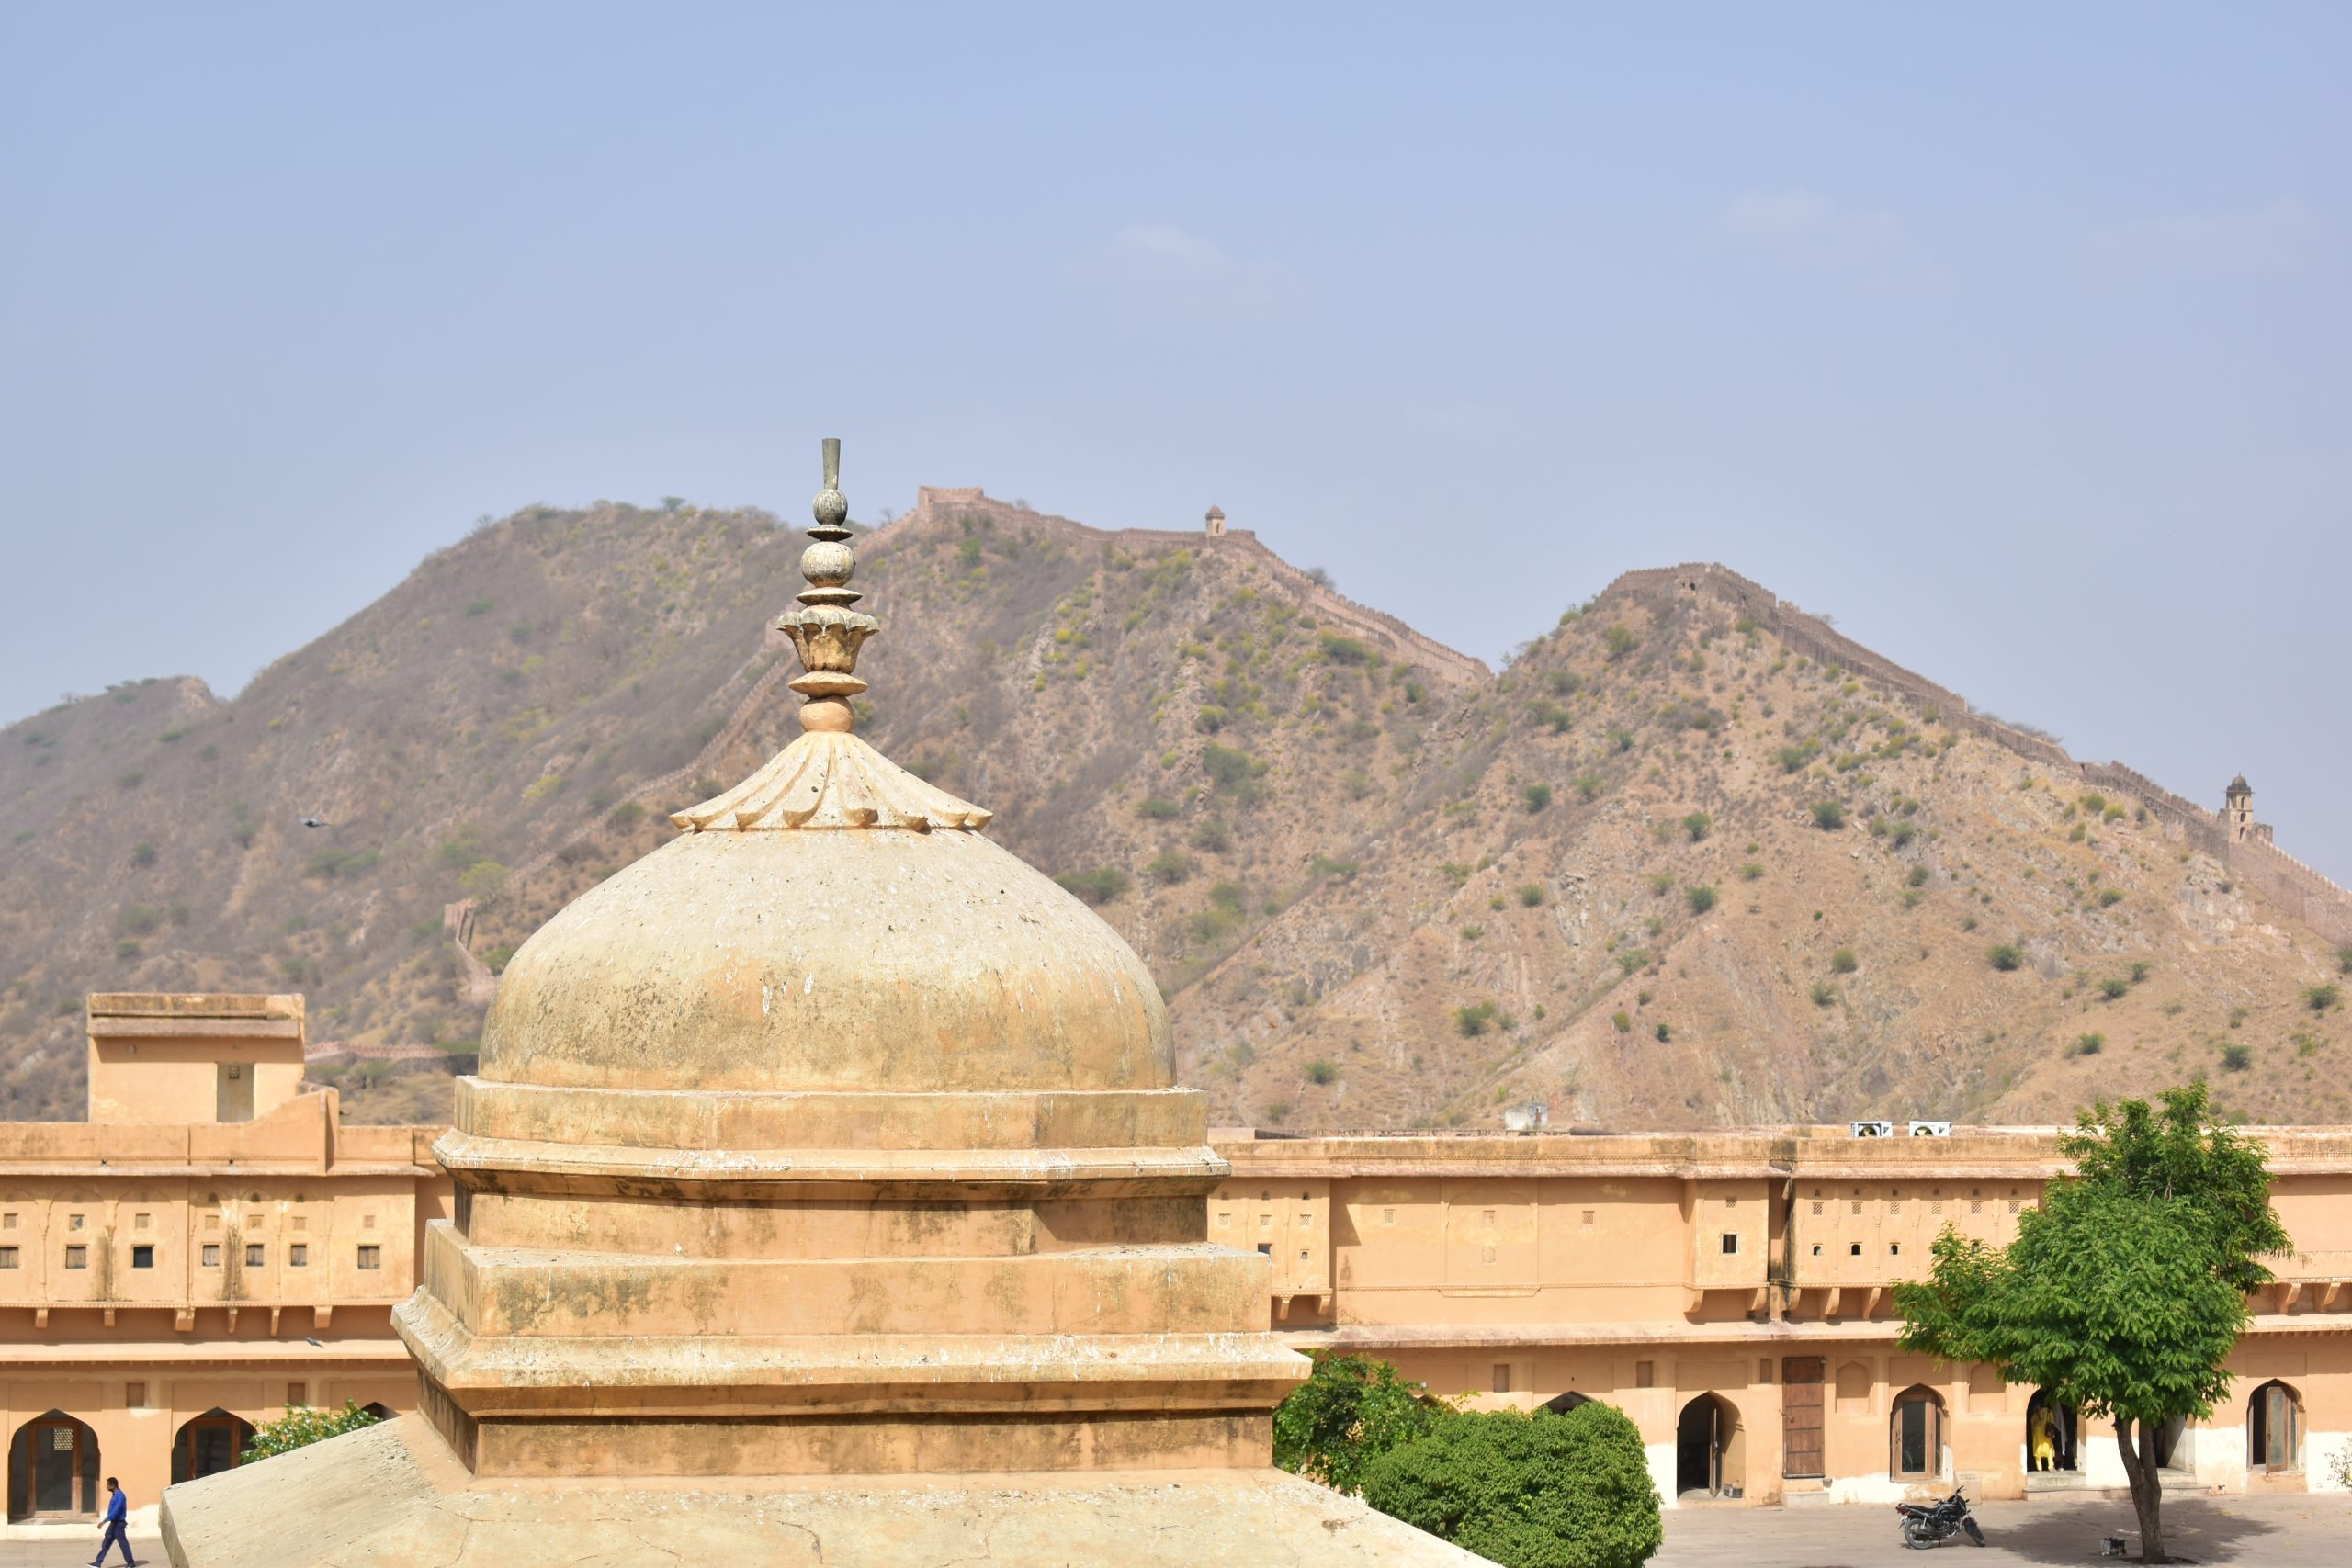 A tomb in Amer fort